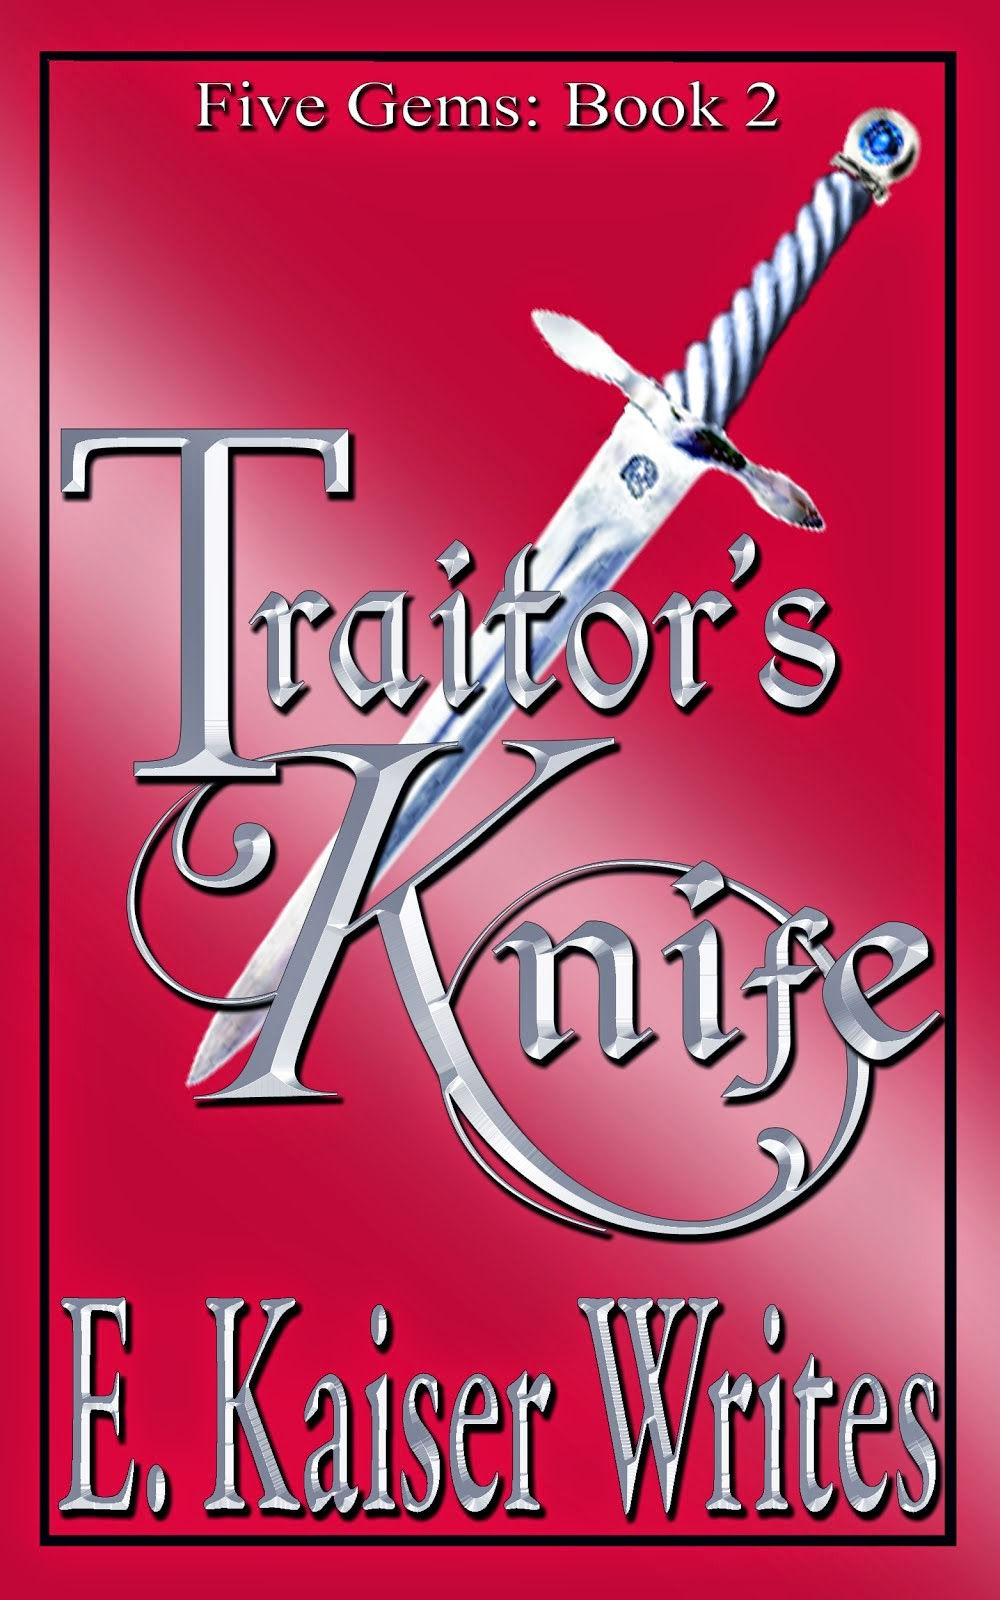 Buy Traitor's Knife!